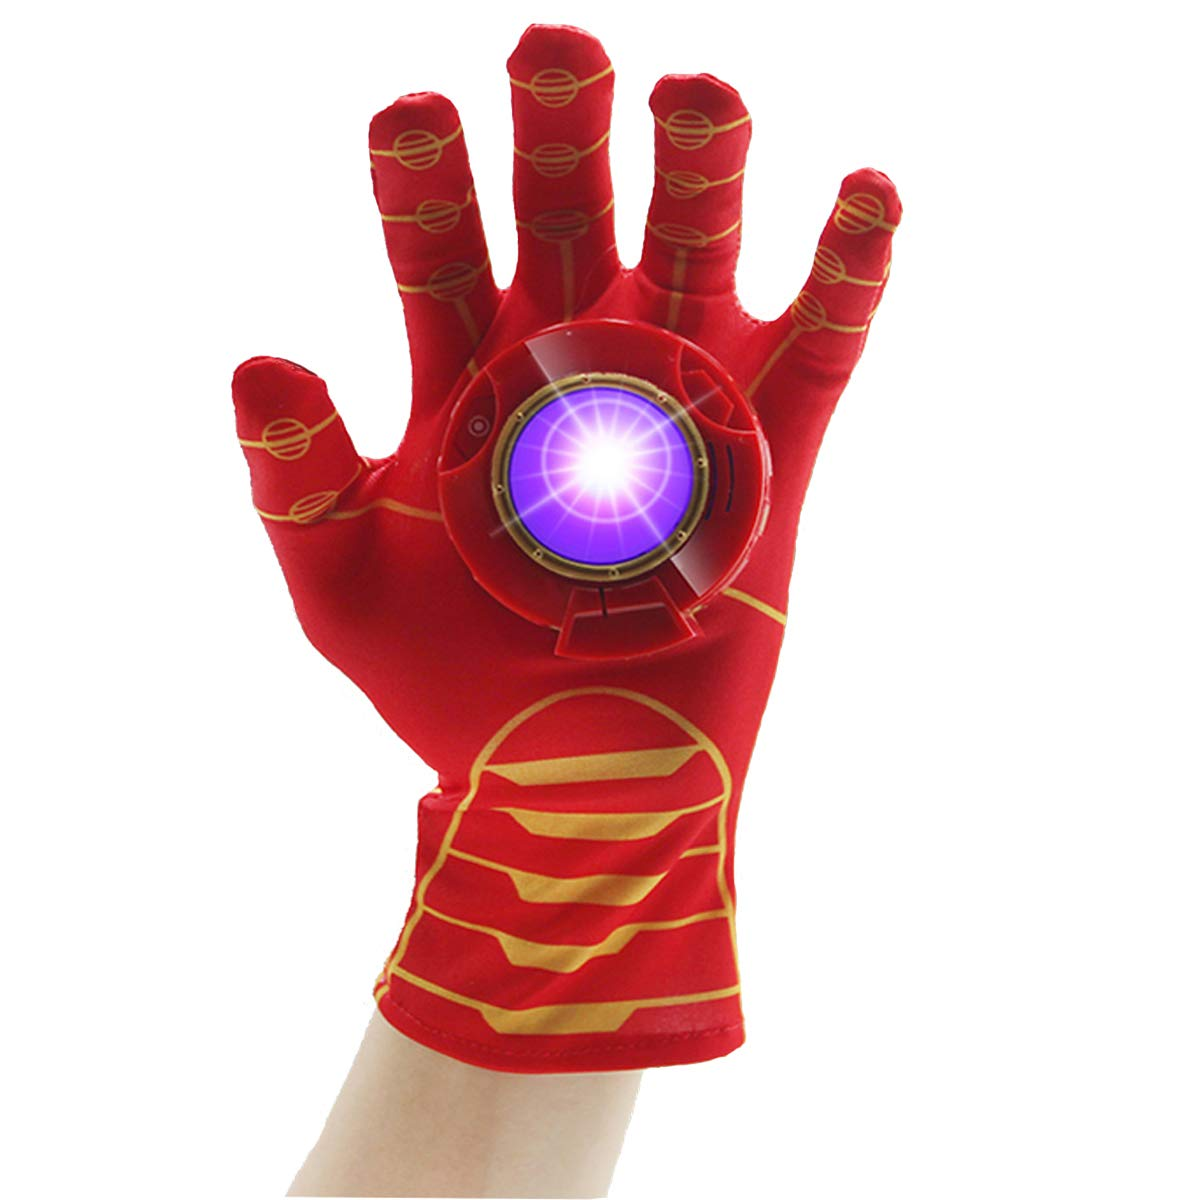 Luminous Voice Toy Gloves, Family Party Cosplay in School Outdoor Games for Kids Sound and Light Device Elastic and Breathable with Gravity Sensing(Left Hand)